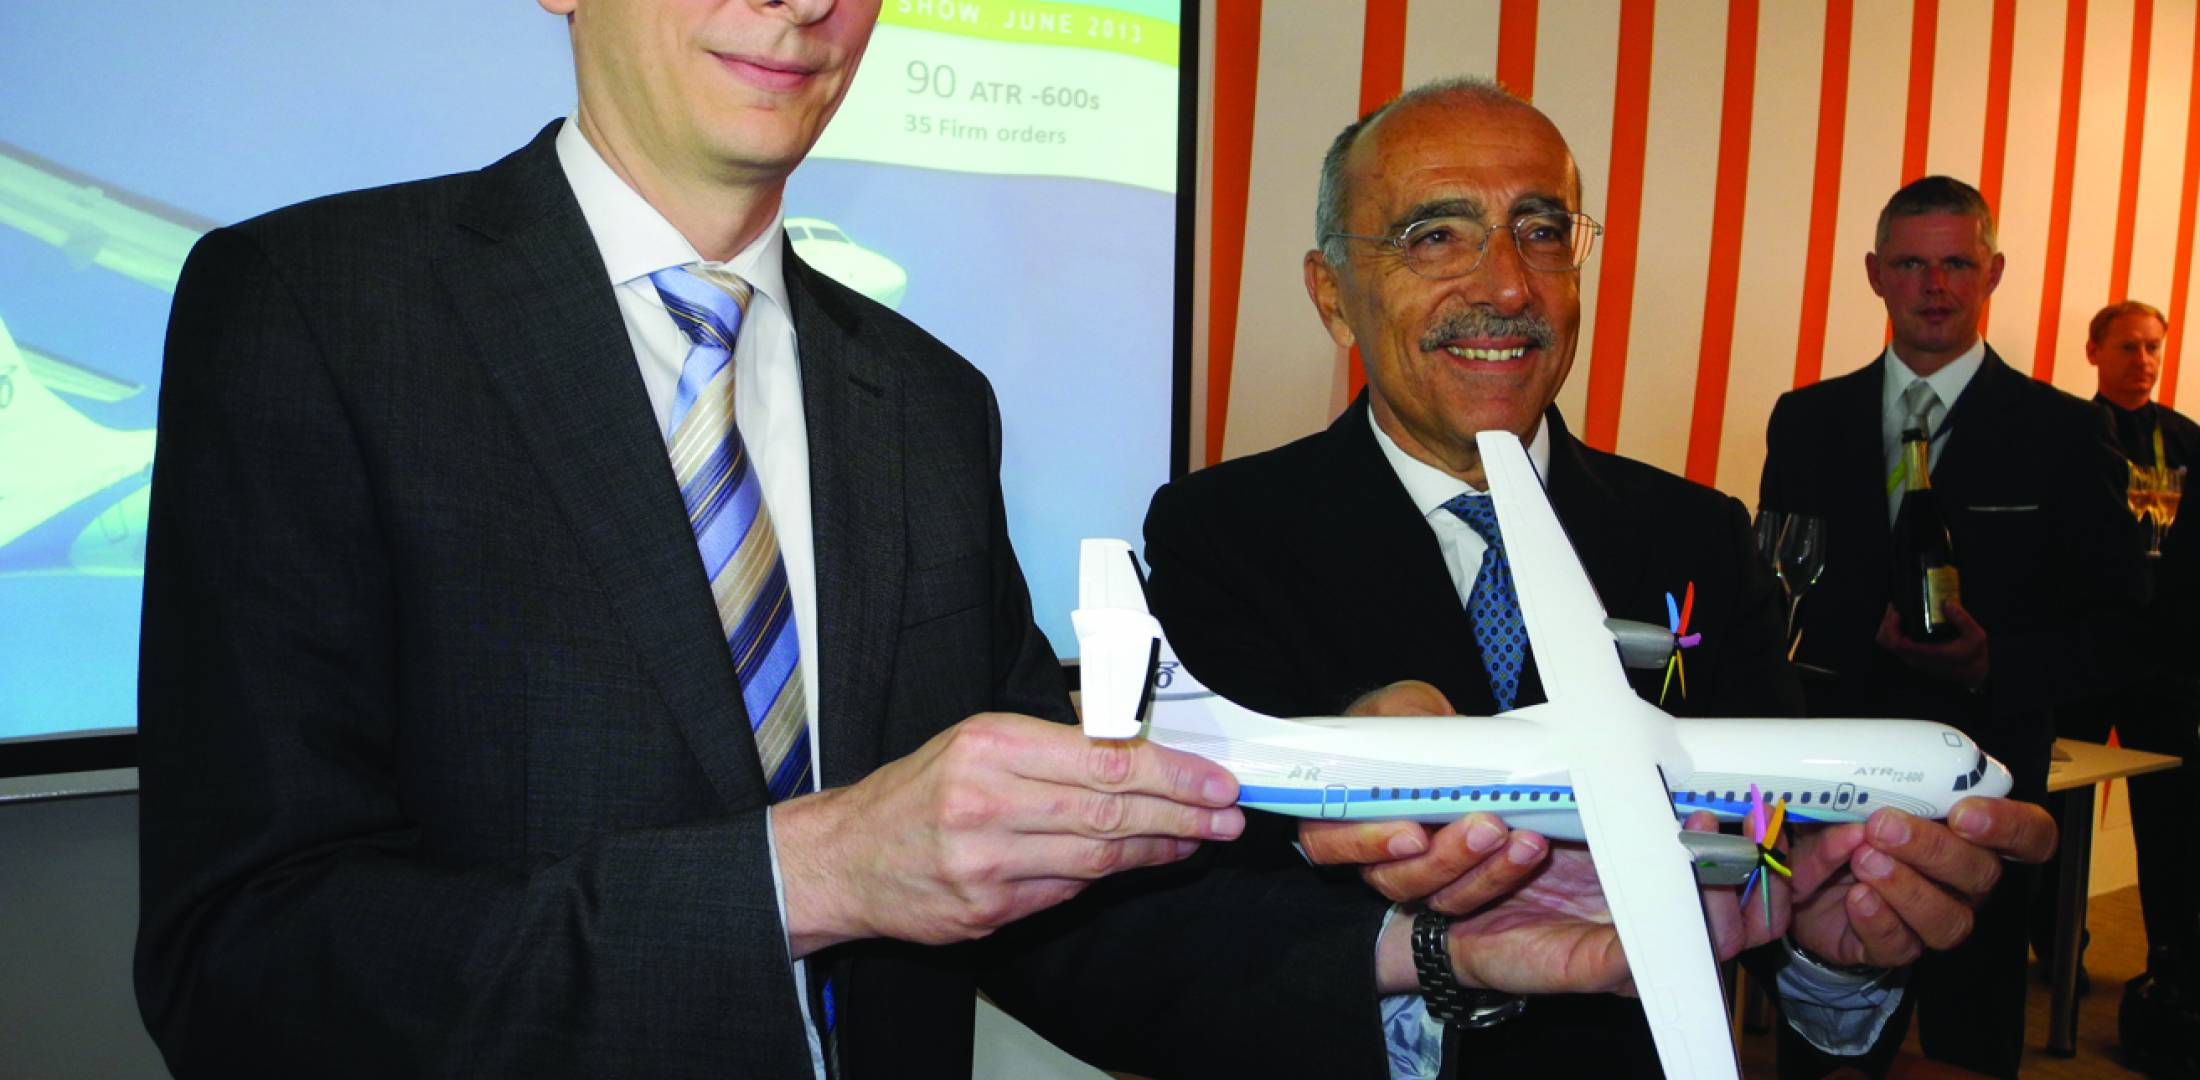 (left to right) Julian Jacome, Avianca COO, celebrates with Filippo Bagnato, CEO of ATR on delivery of Avianca's first of 15 ATR 72-600s.